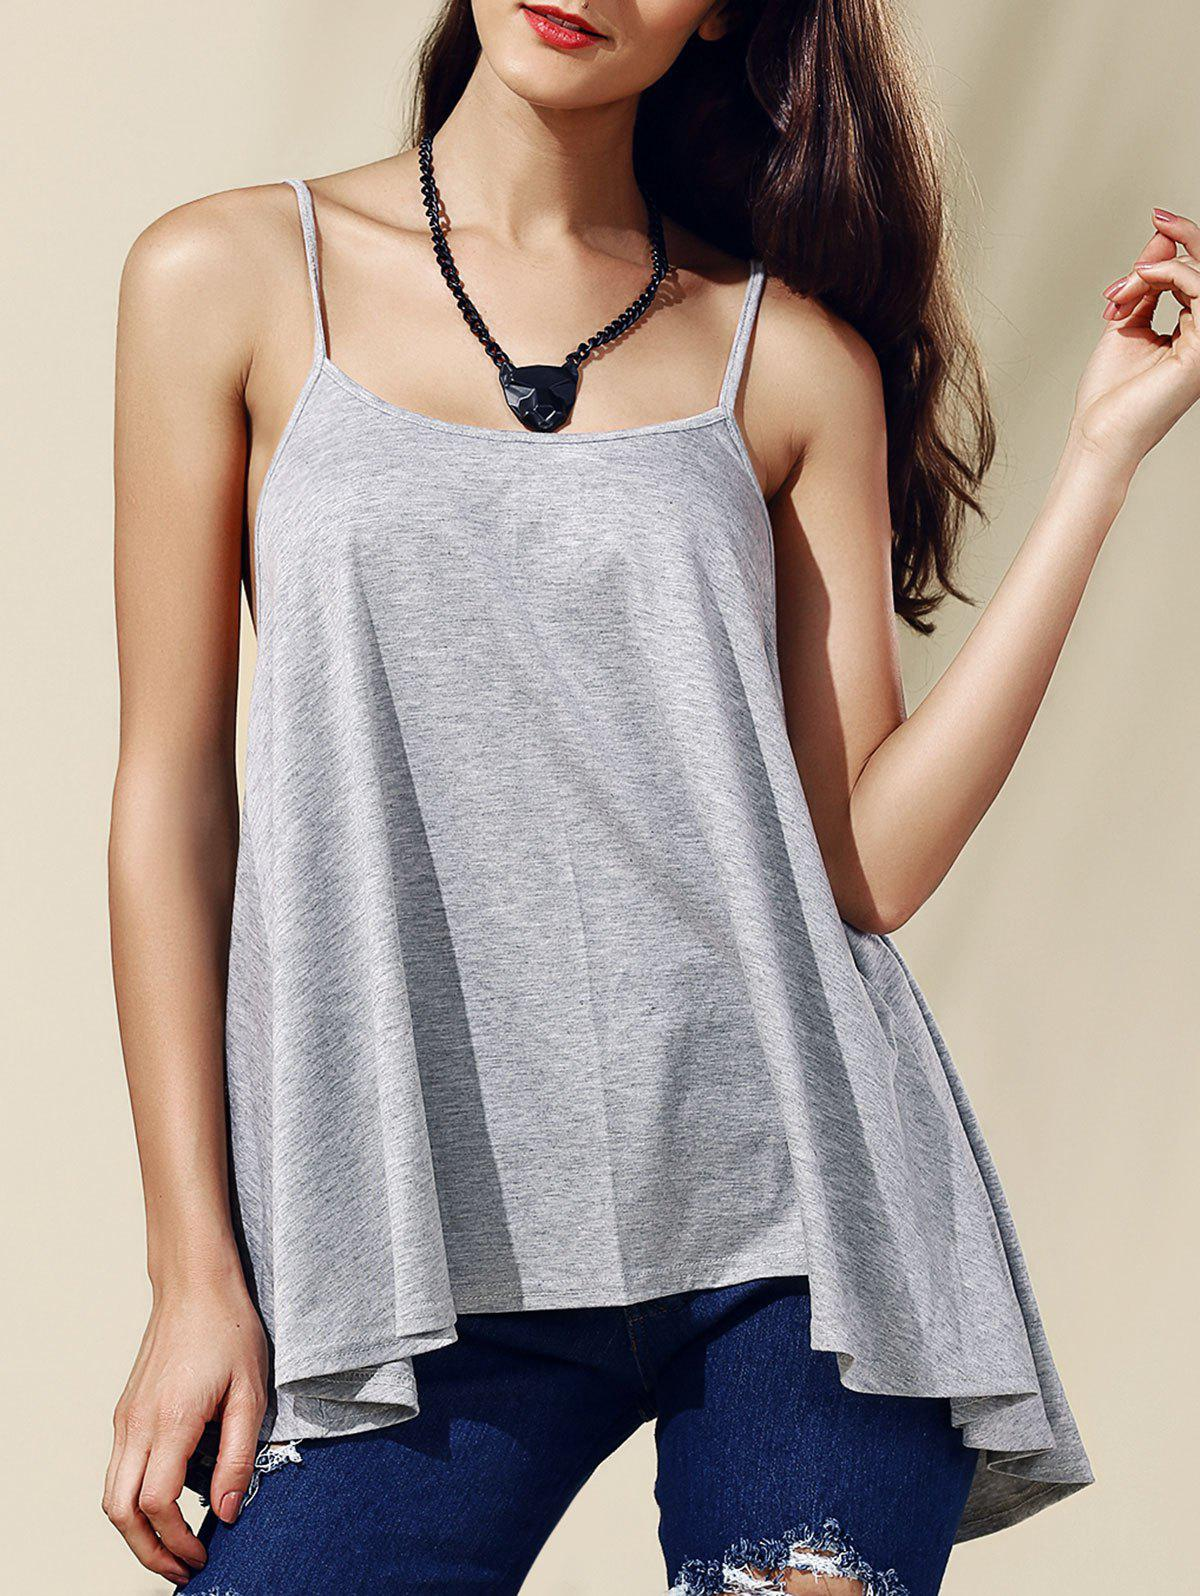 Stylish Backless Pure Color Spaghetti Strap Tank Top For Women - 2XL GRAY